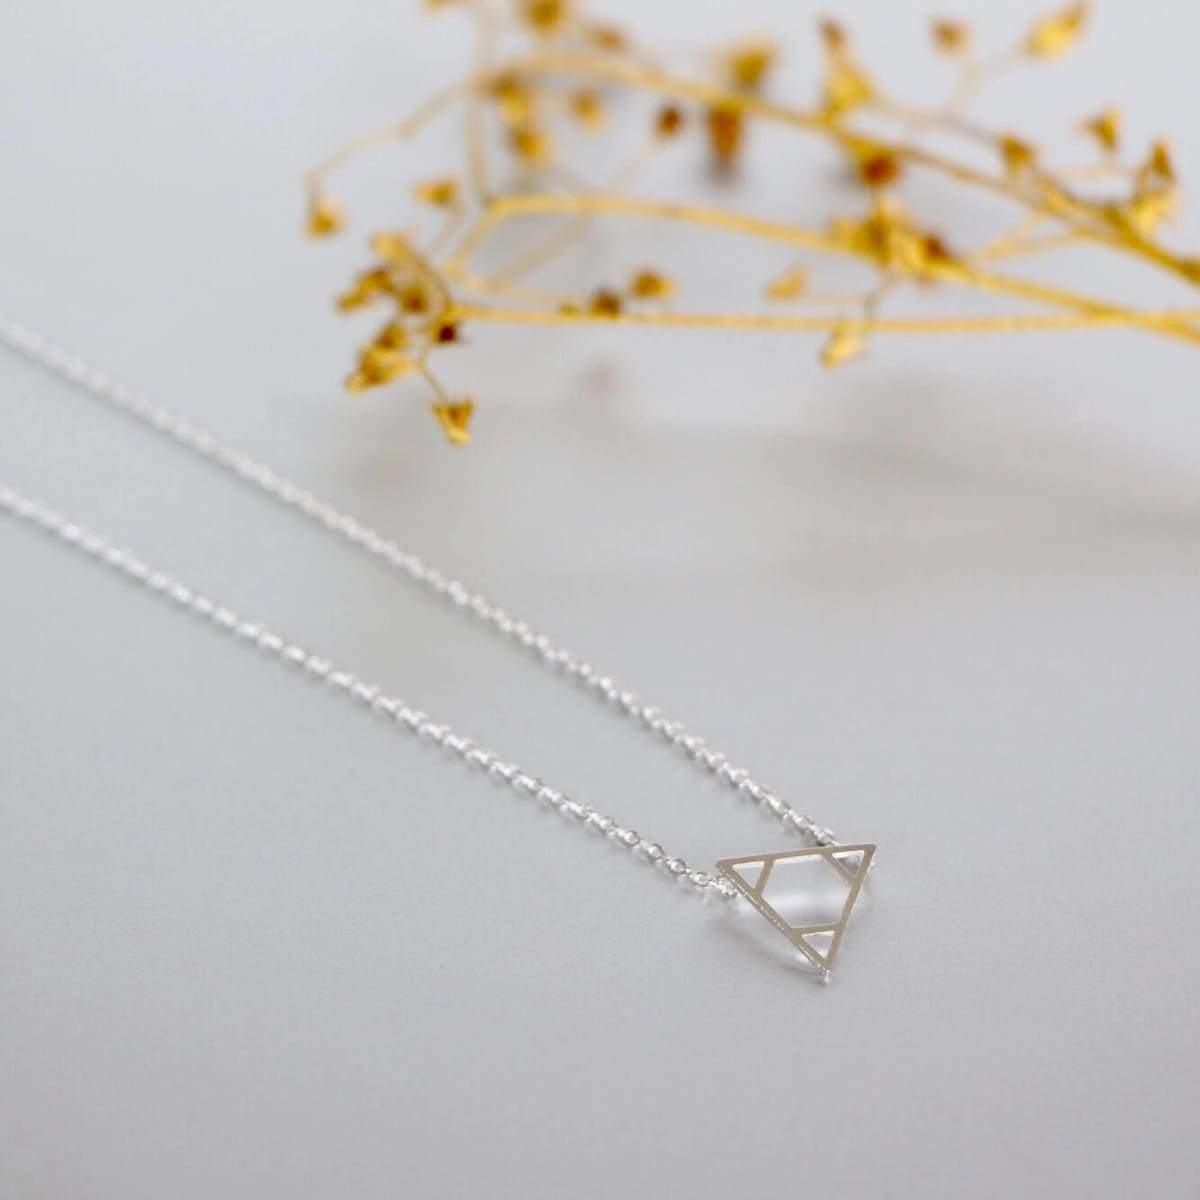 Necklaces Necklace Set Triangle Gold And Rhodium Charm Dipped Minimalist Delicate Gift (SN103/104)